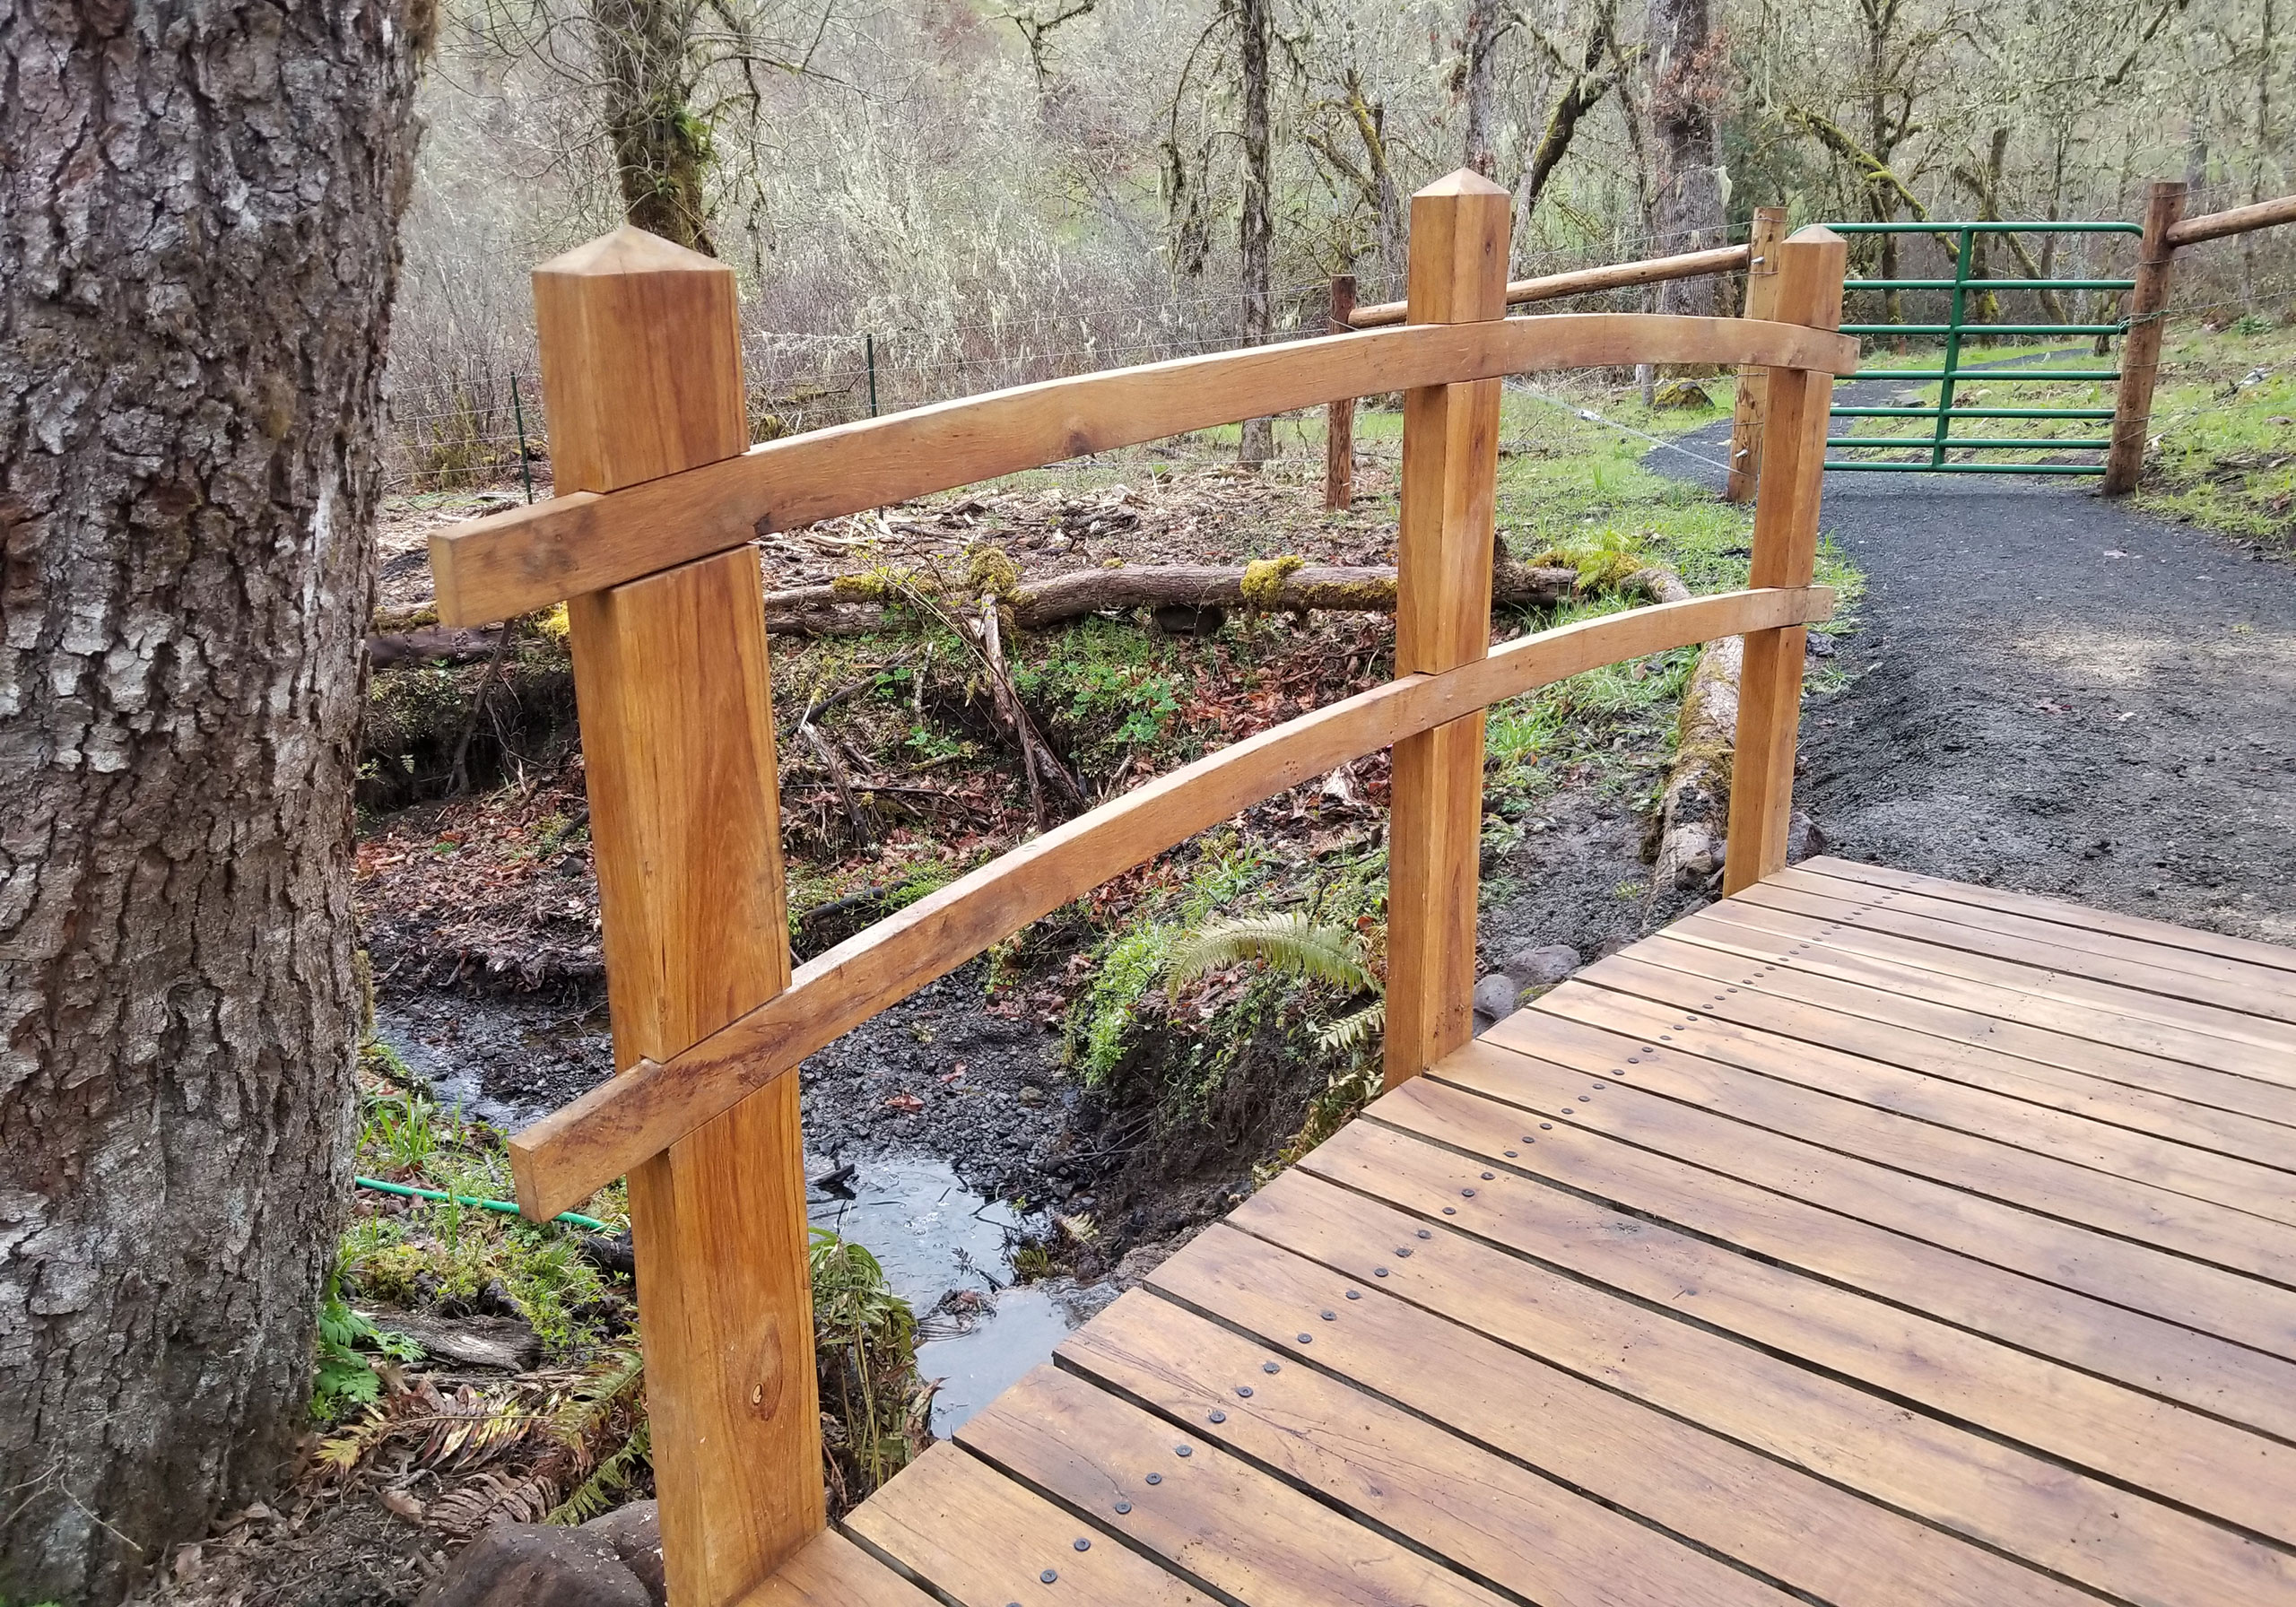 Finished oak arched bridge with inlaid arched railings on Bridge Trail at Crestmont Land Trust